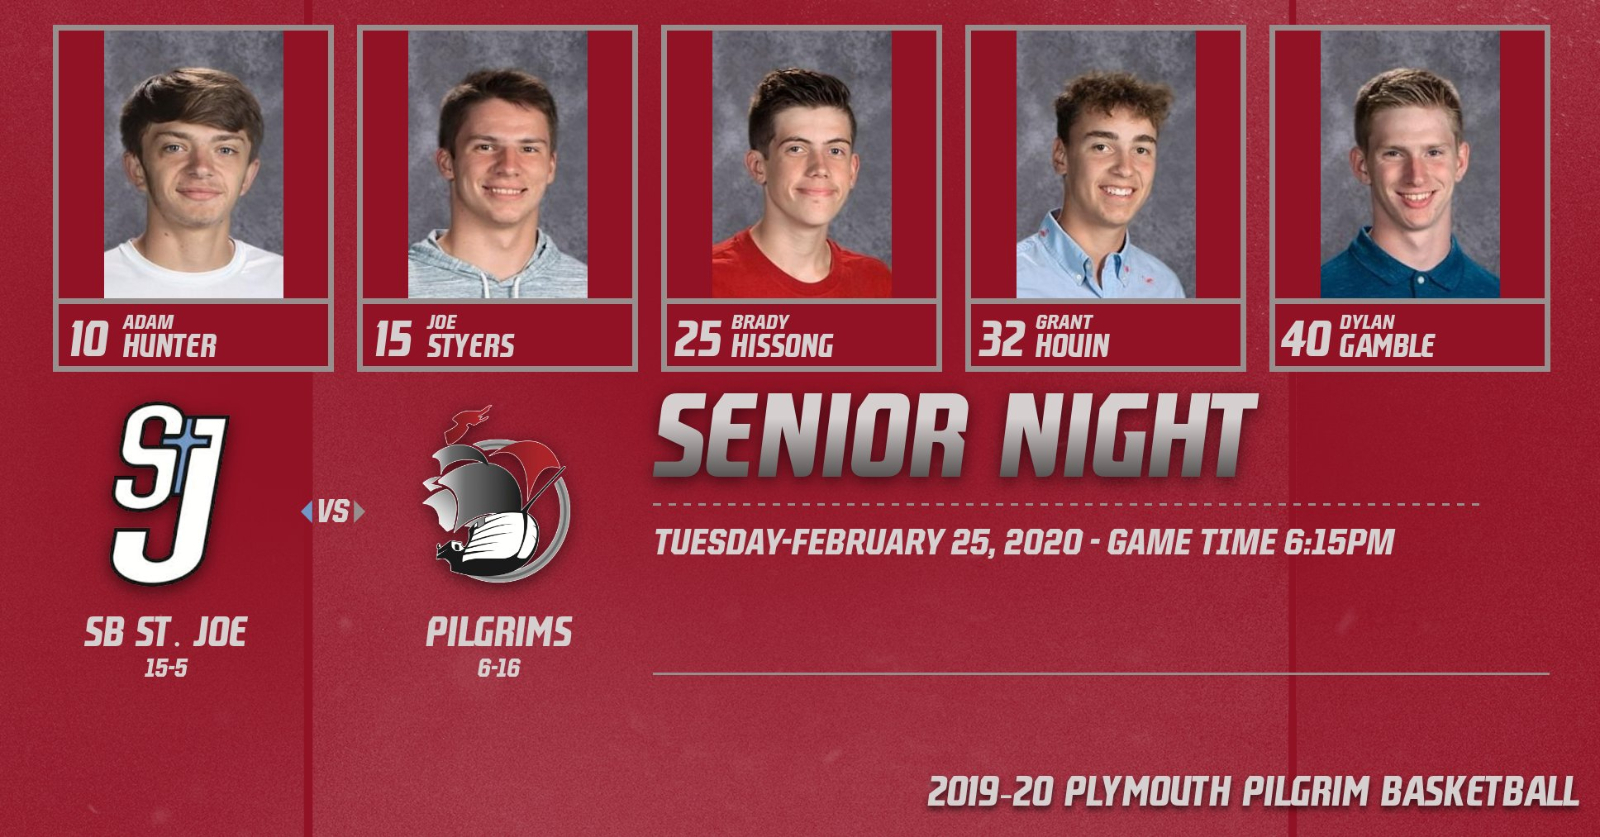 Senior Night for Boys Basketball is set for, Tuesday-February 25th